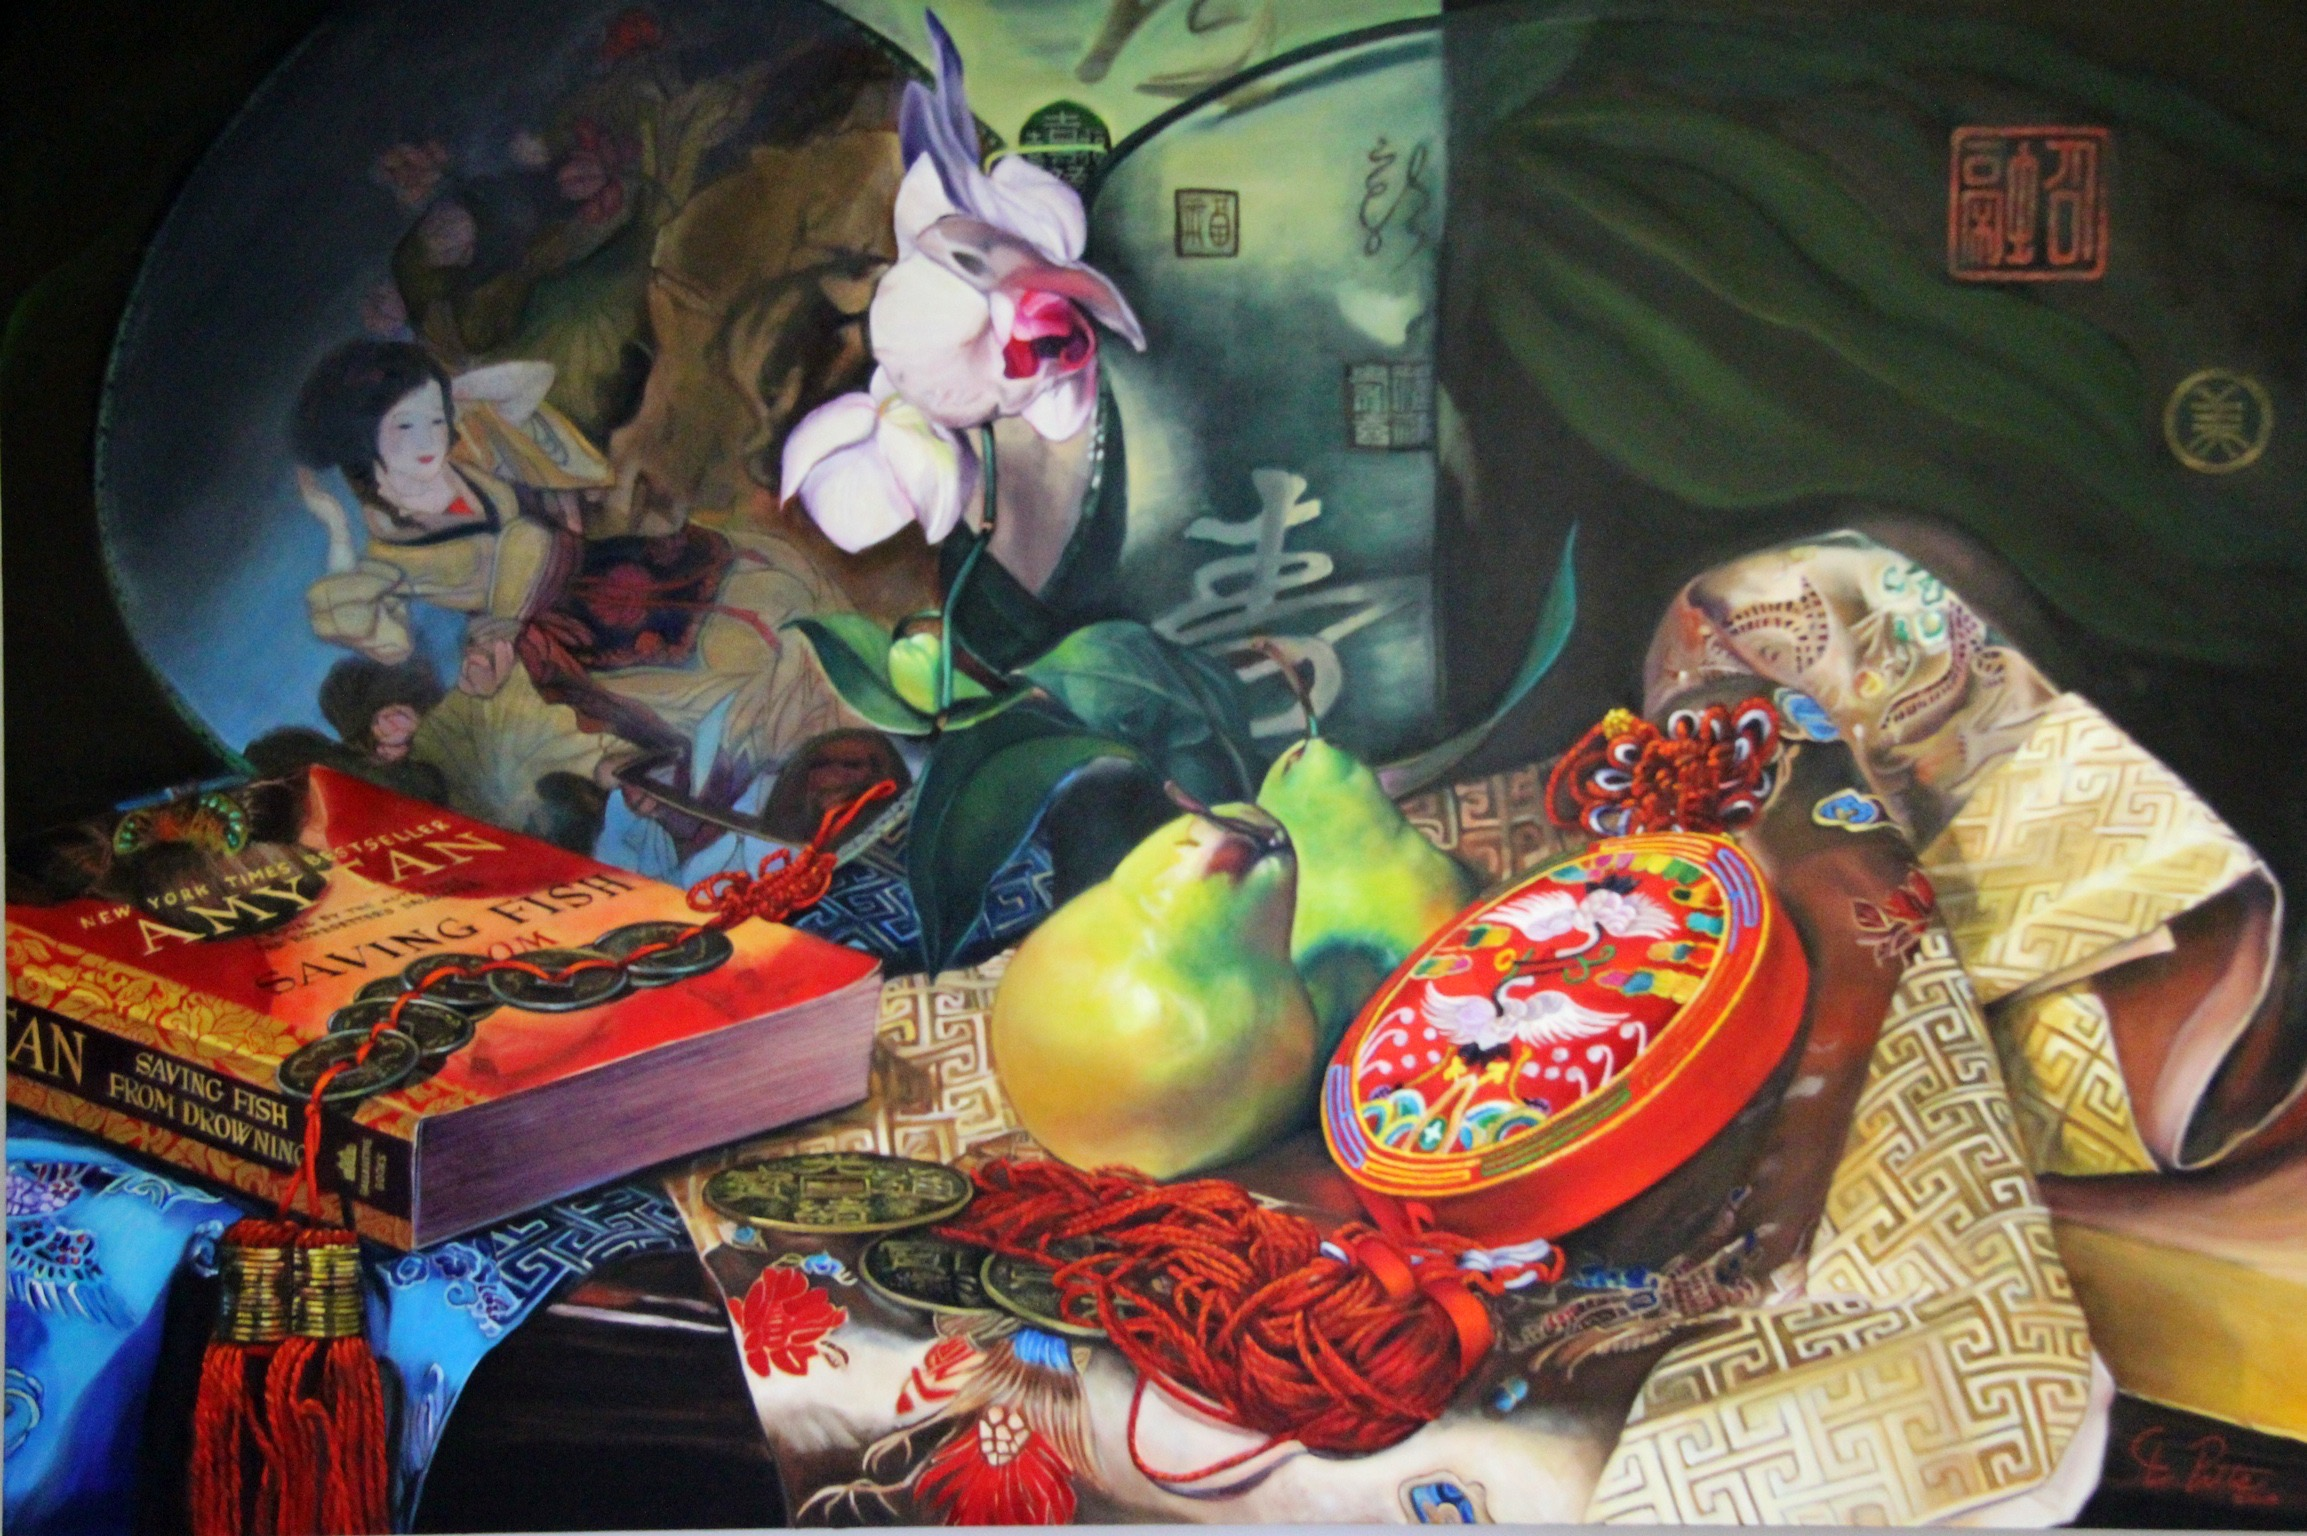 NOAPS Pitts East Meets West-Chi Fusion Series, oil on canvas, 48x72 inches, collection of the artist